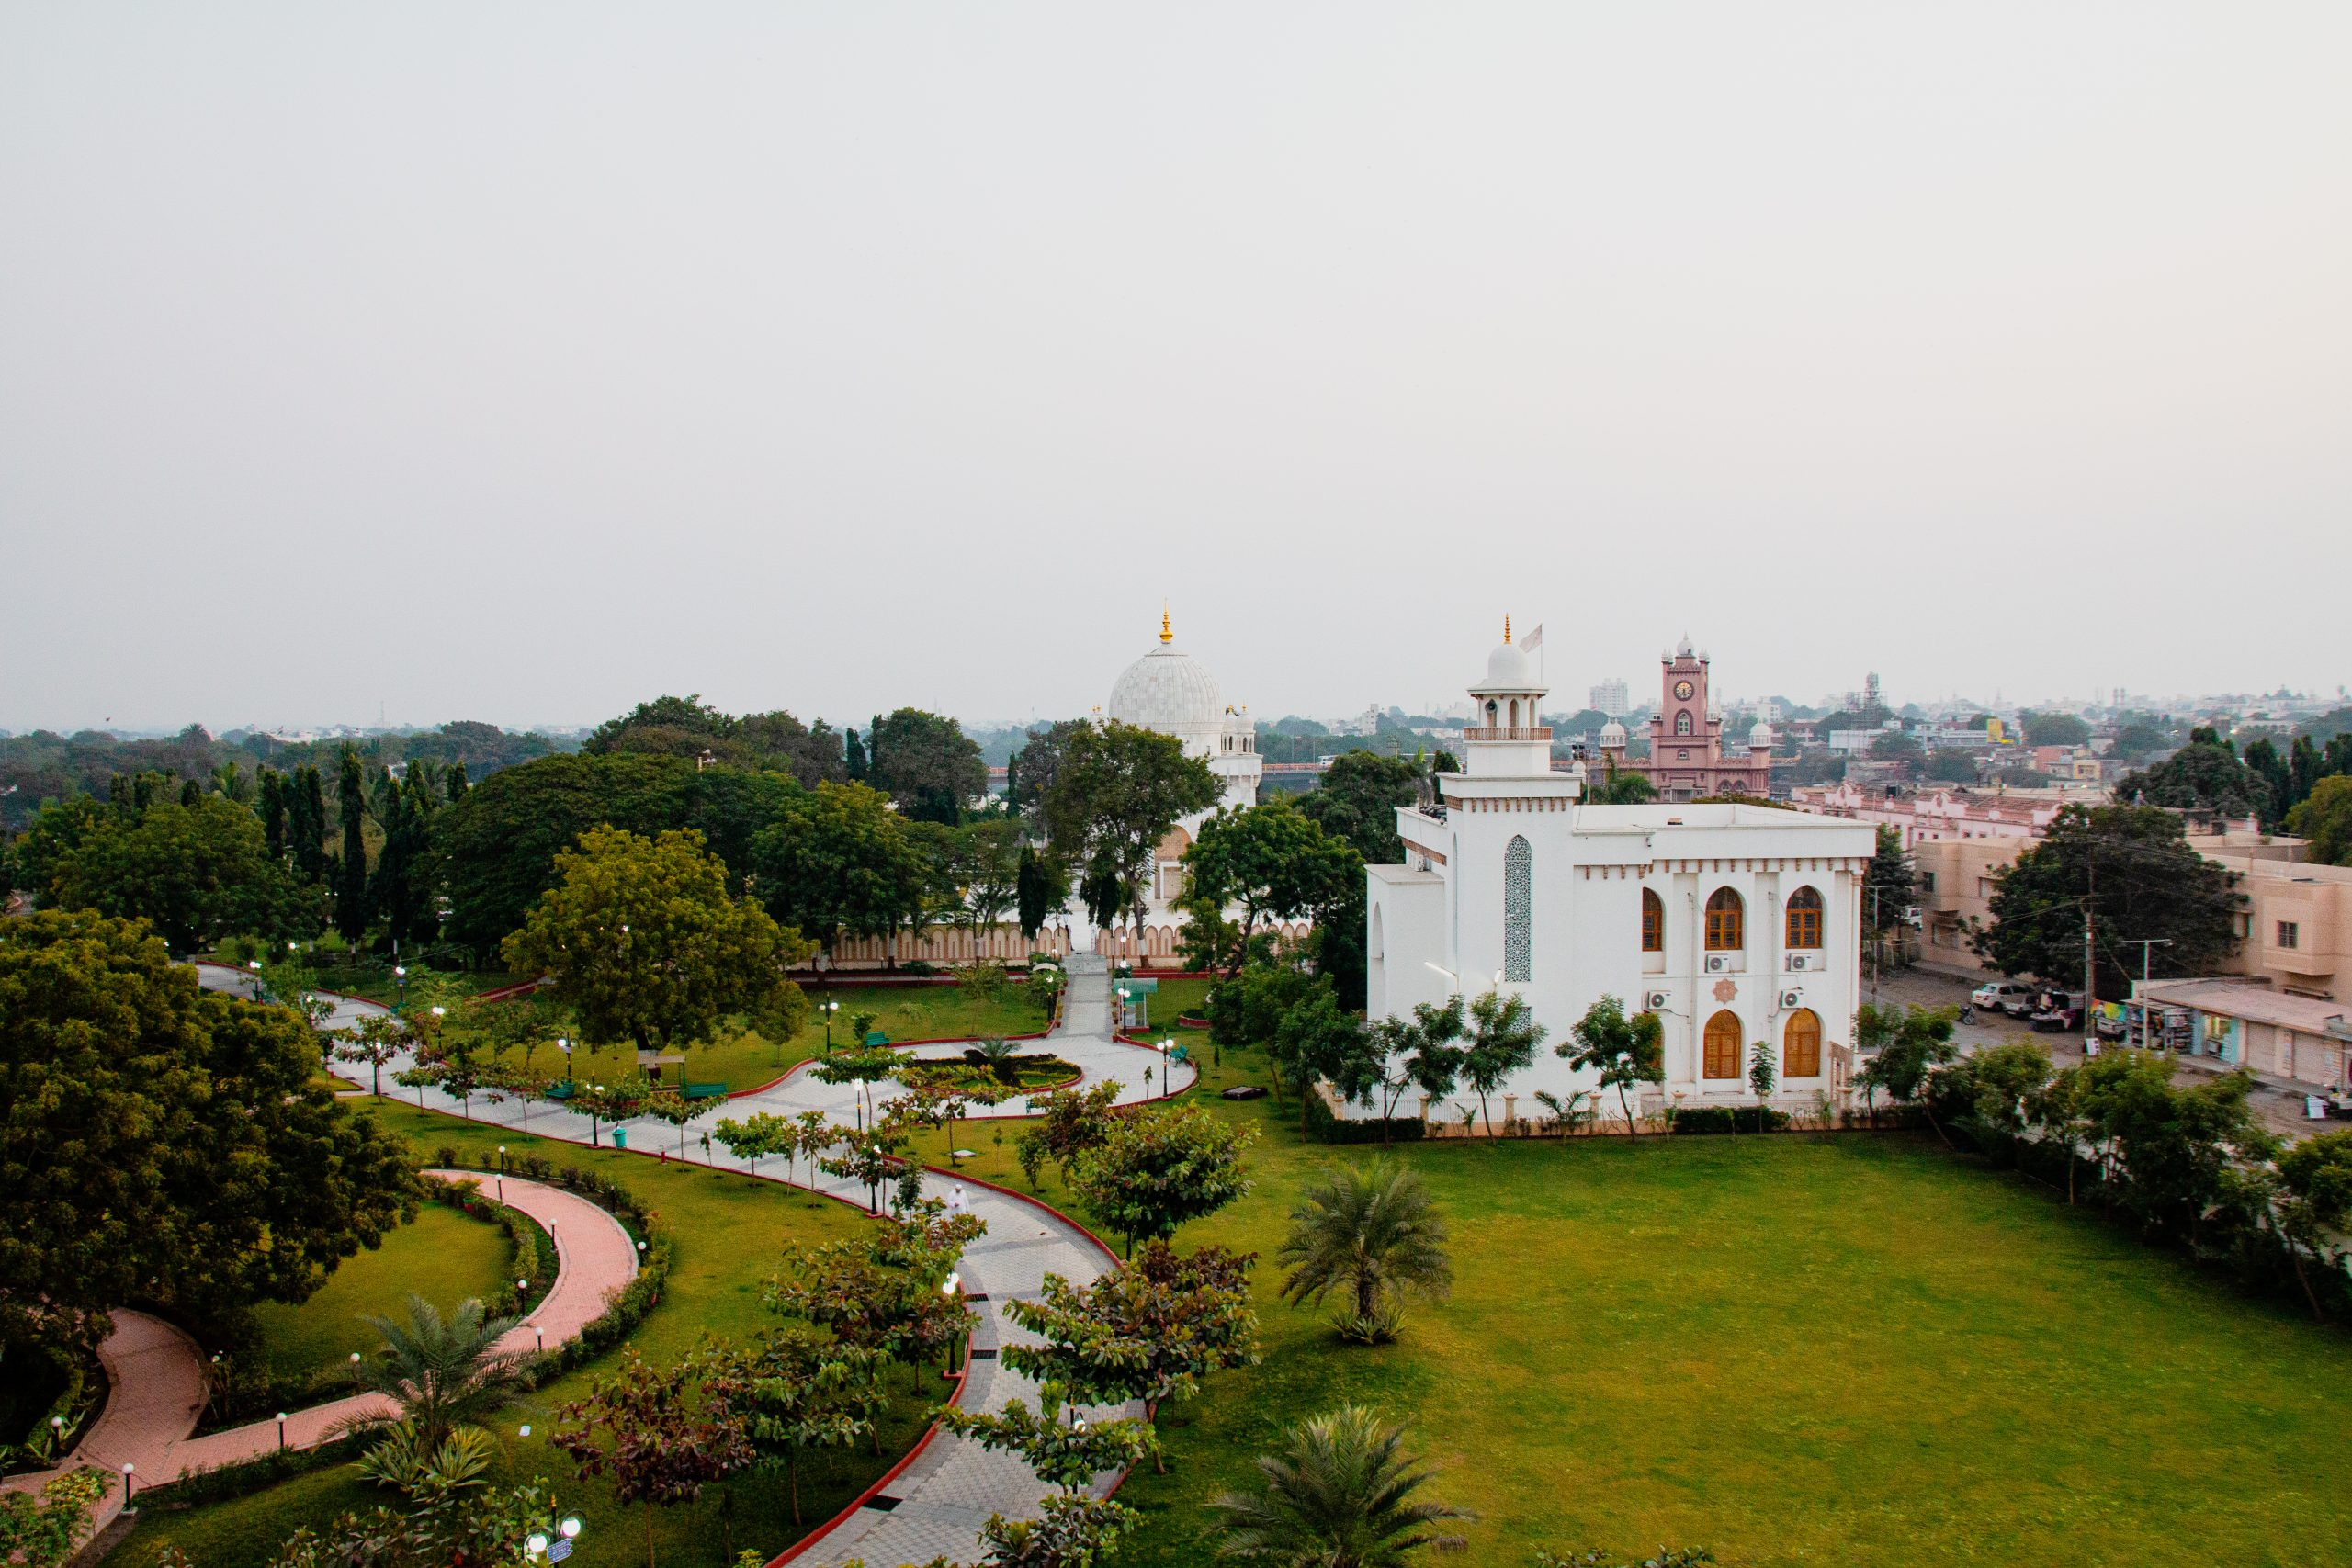 a scenic view of a palace